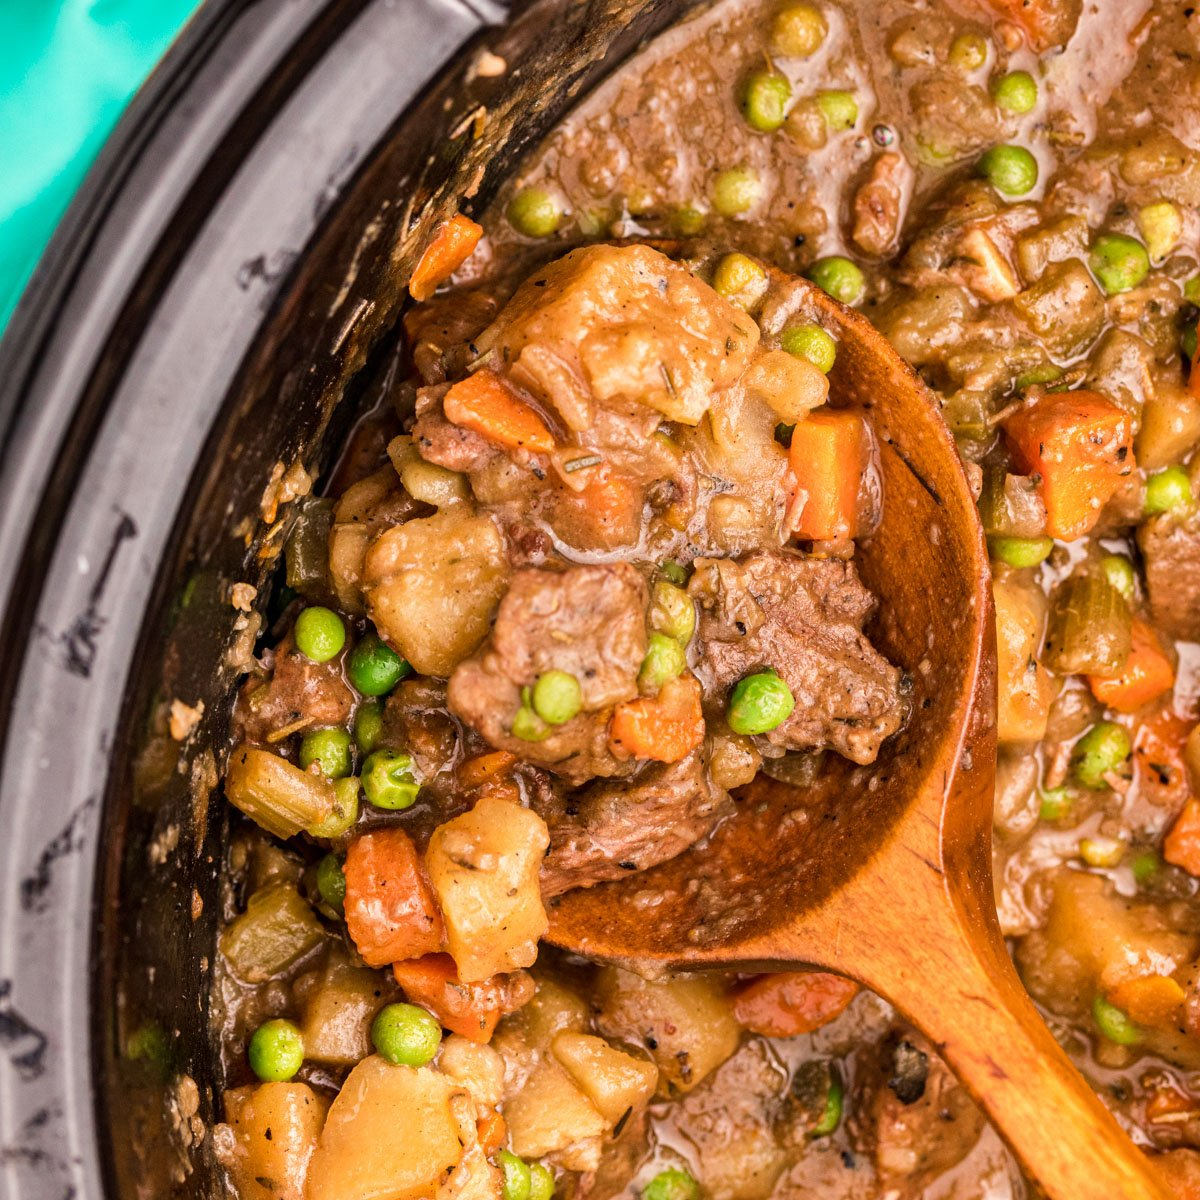 closeup of spoon scooping out slow cooker beef stew from a crockpot